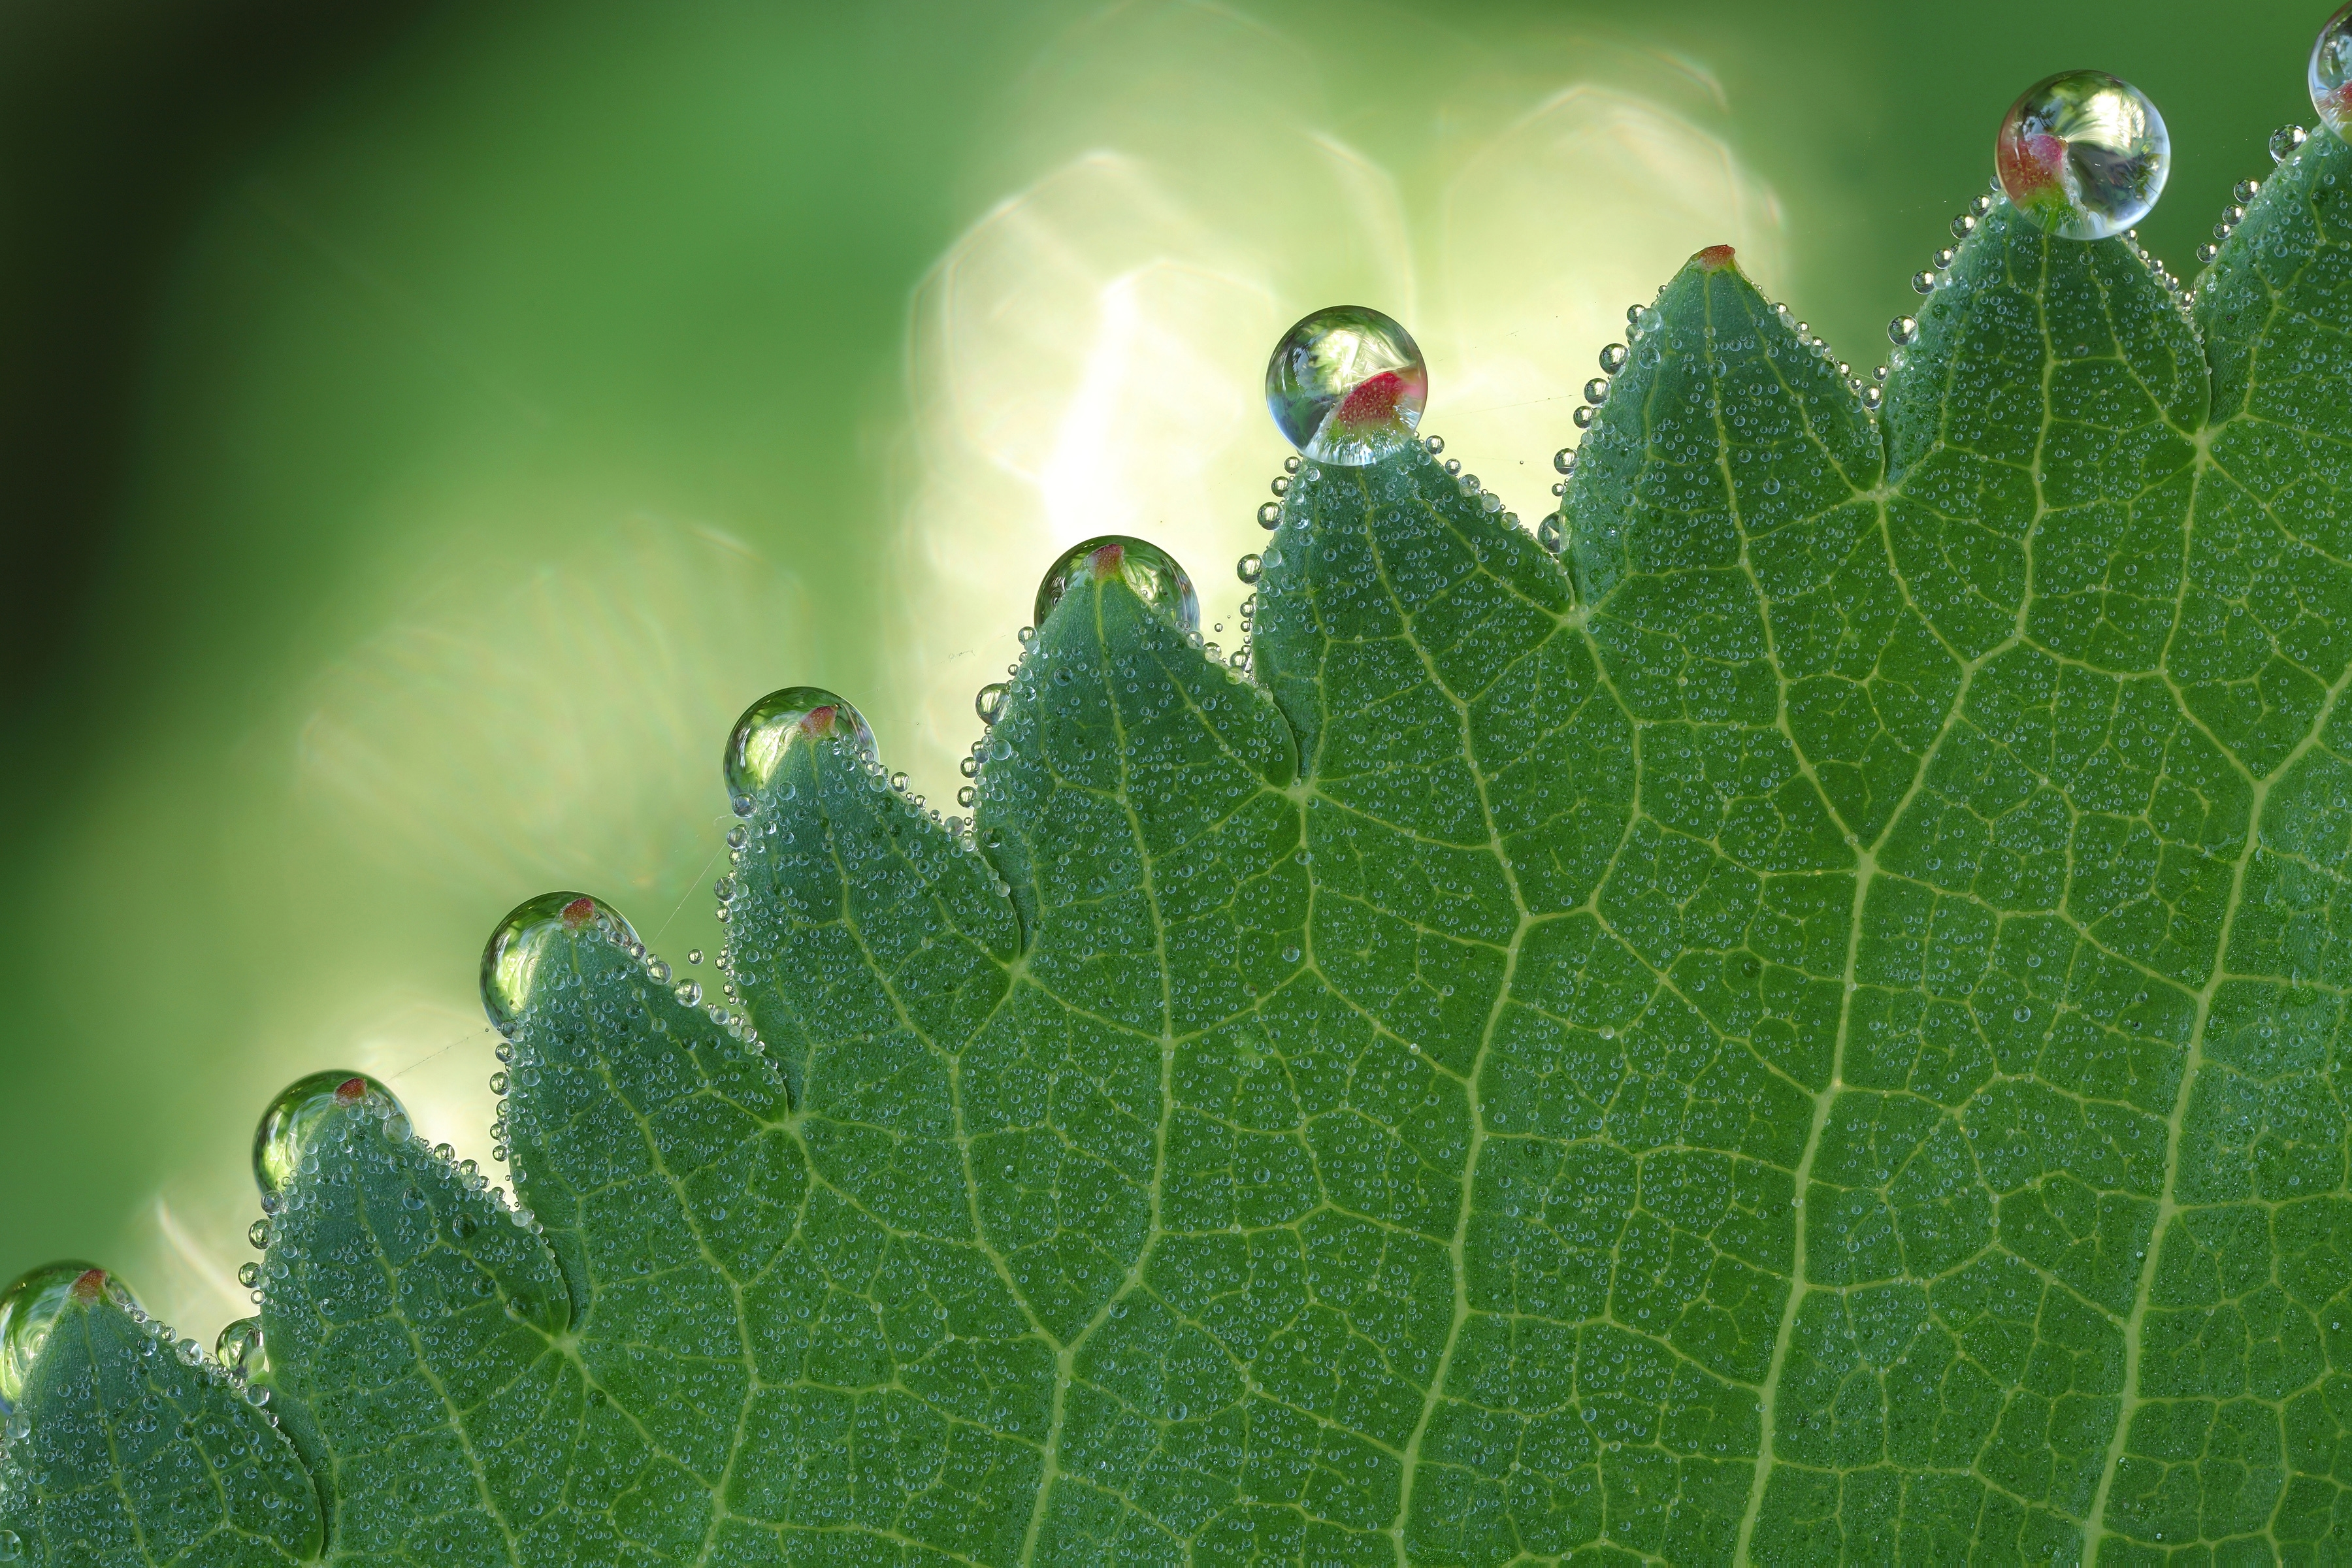 136360 download wallpaper Macro, Plant, Drops, Sheet, Leaf, Form, Carved screensavers and pictures for free